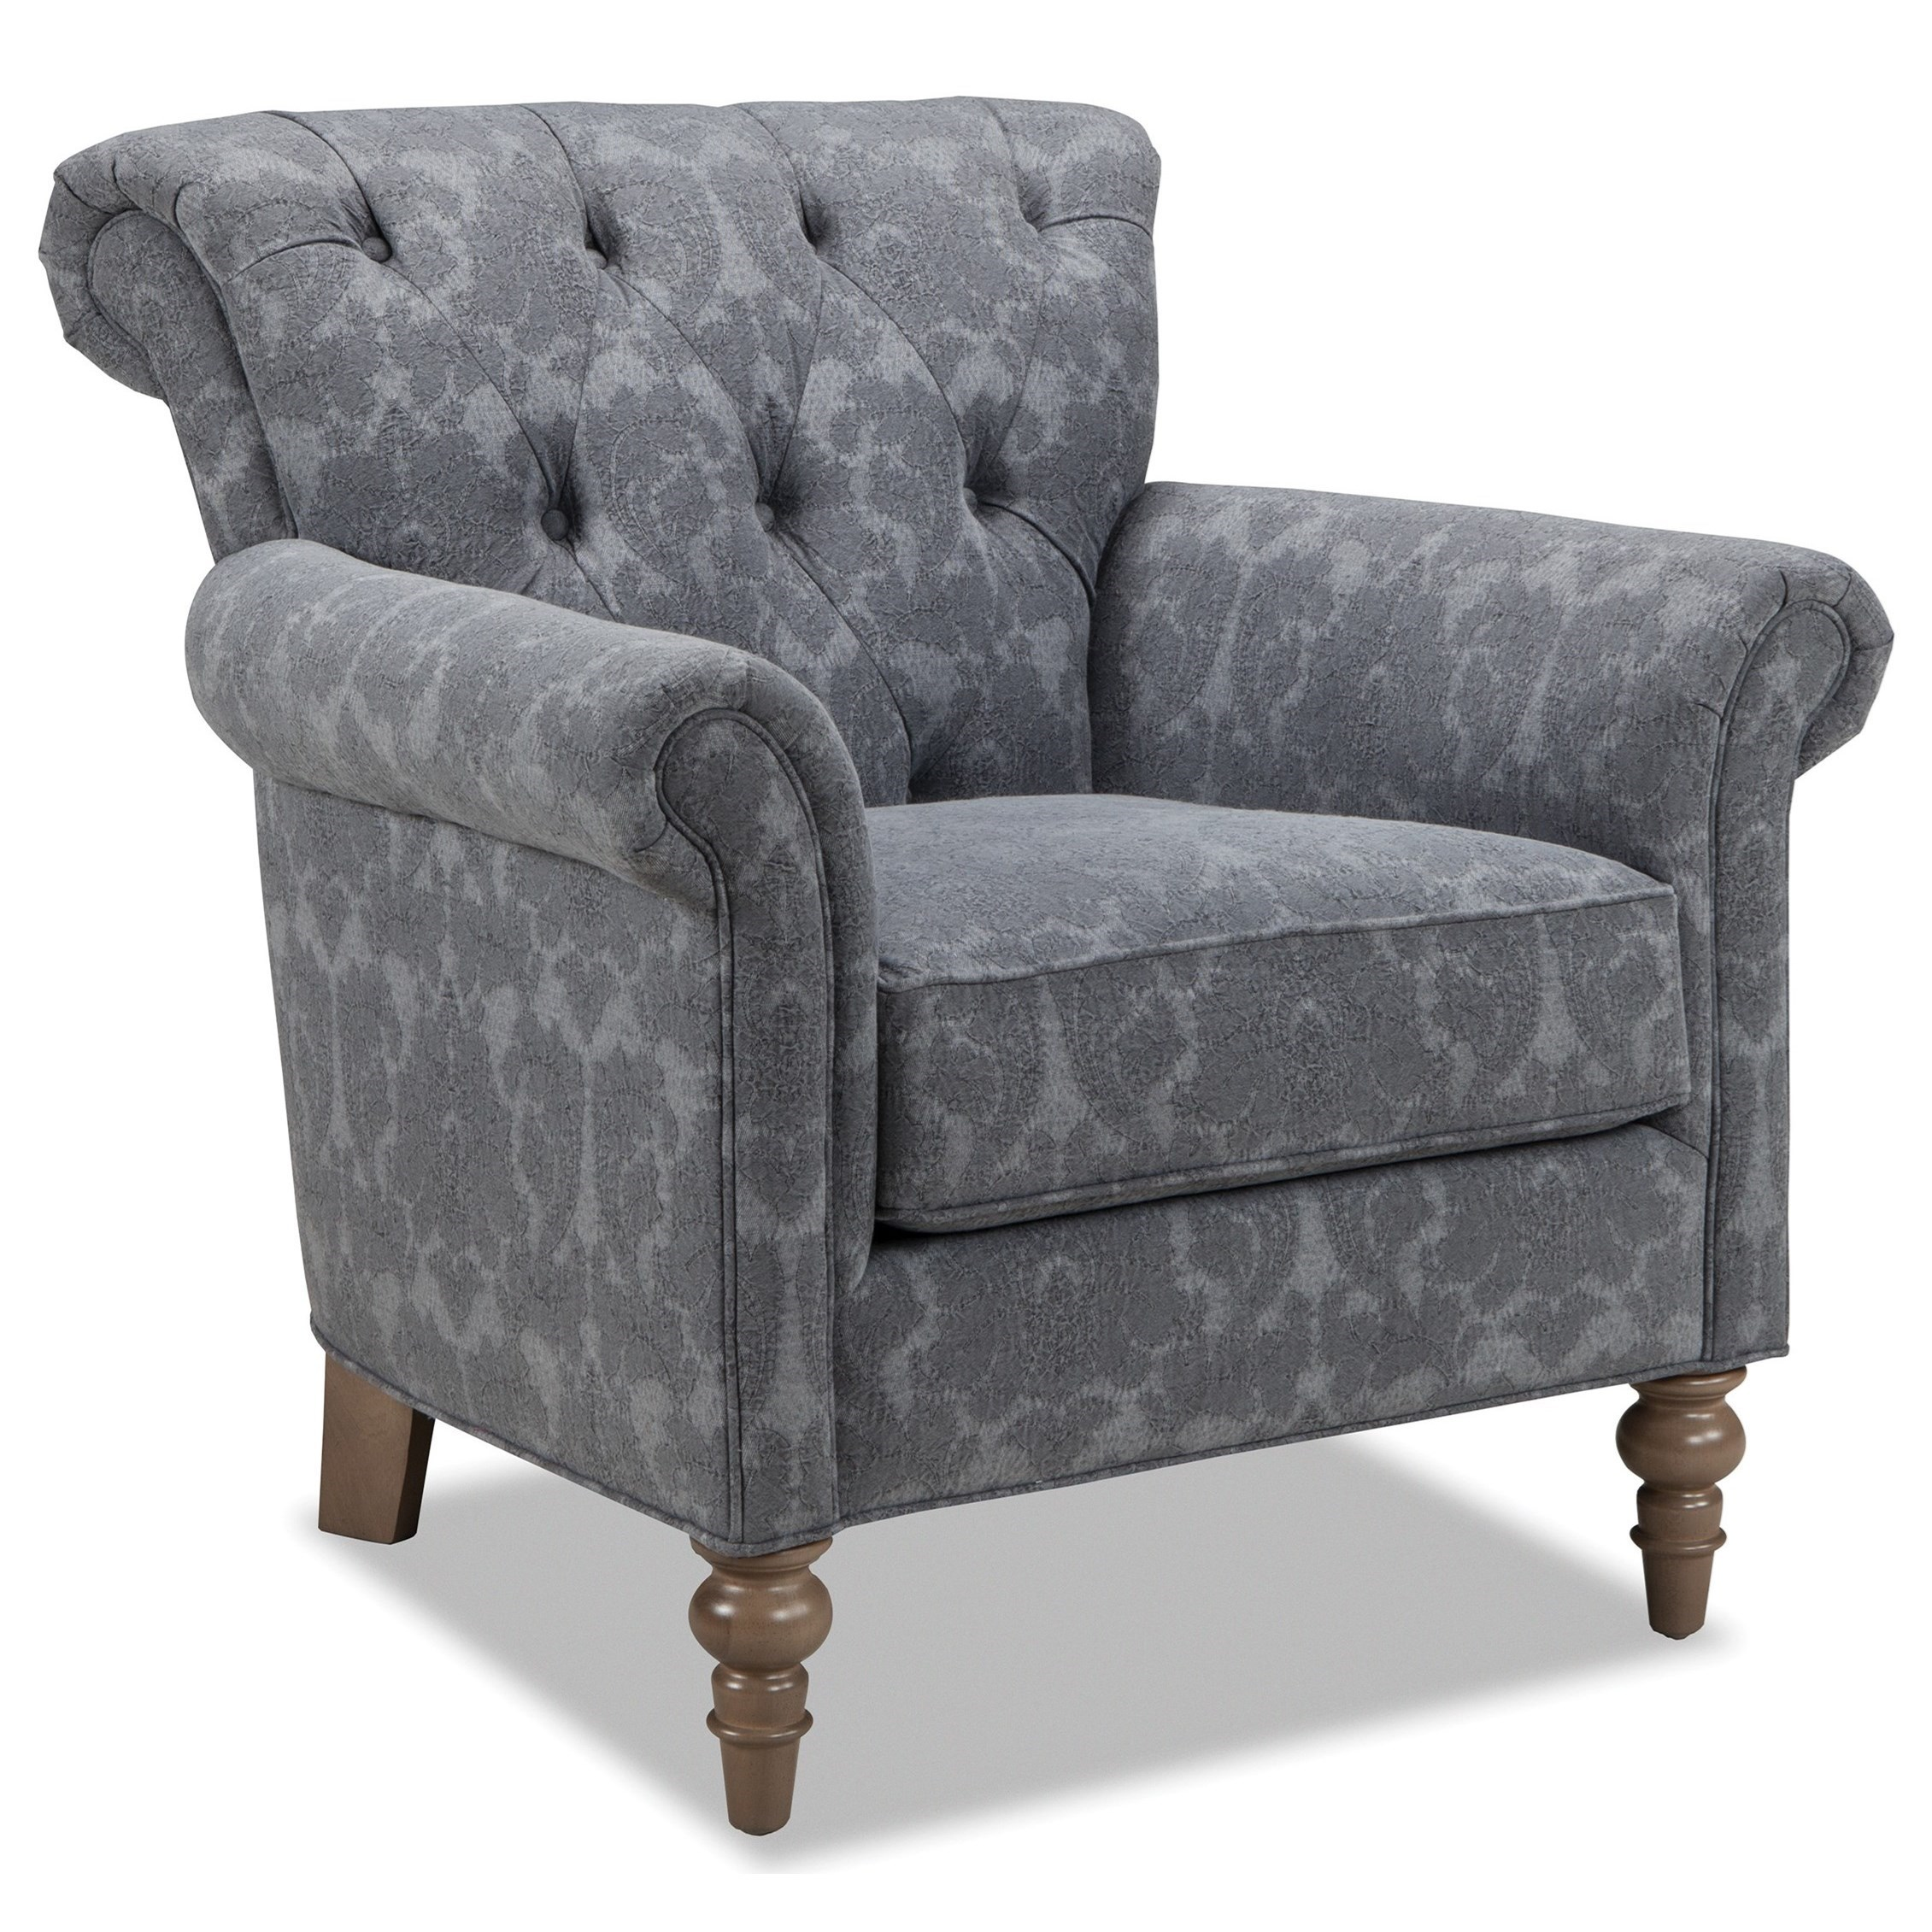 063410 Button Tufted Chair With Rolled Back And Turned Legs By Craftmaster